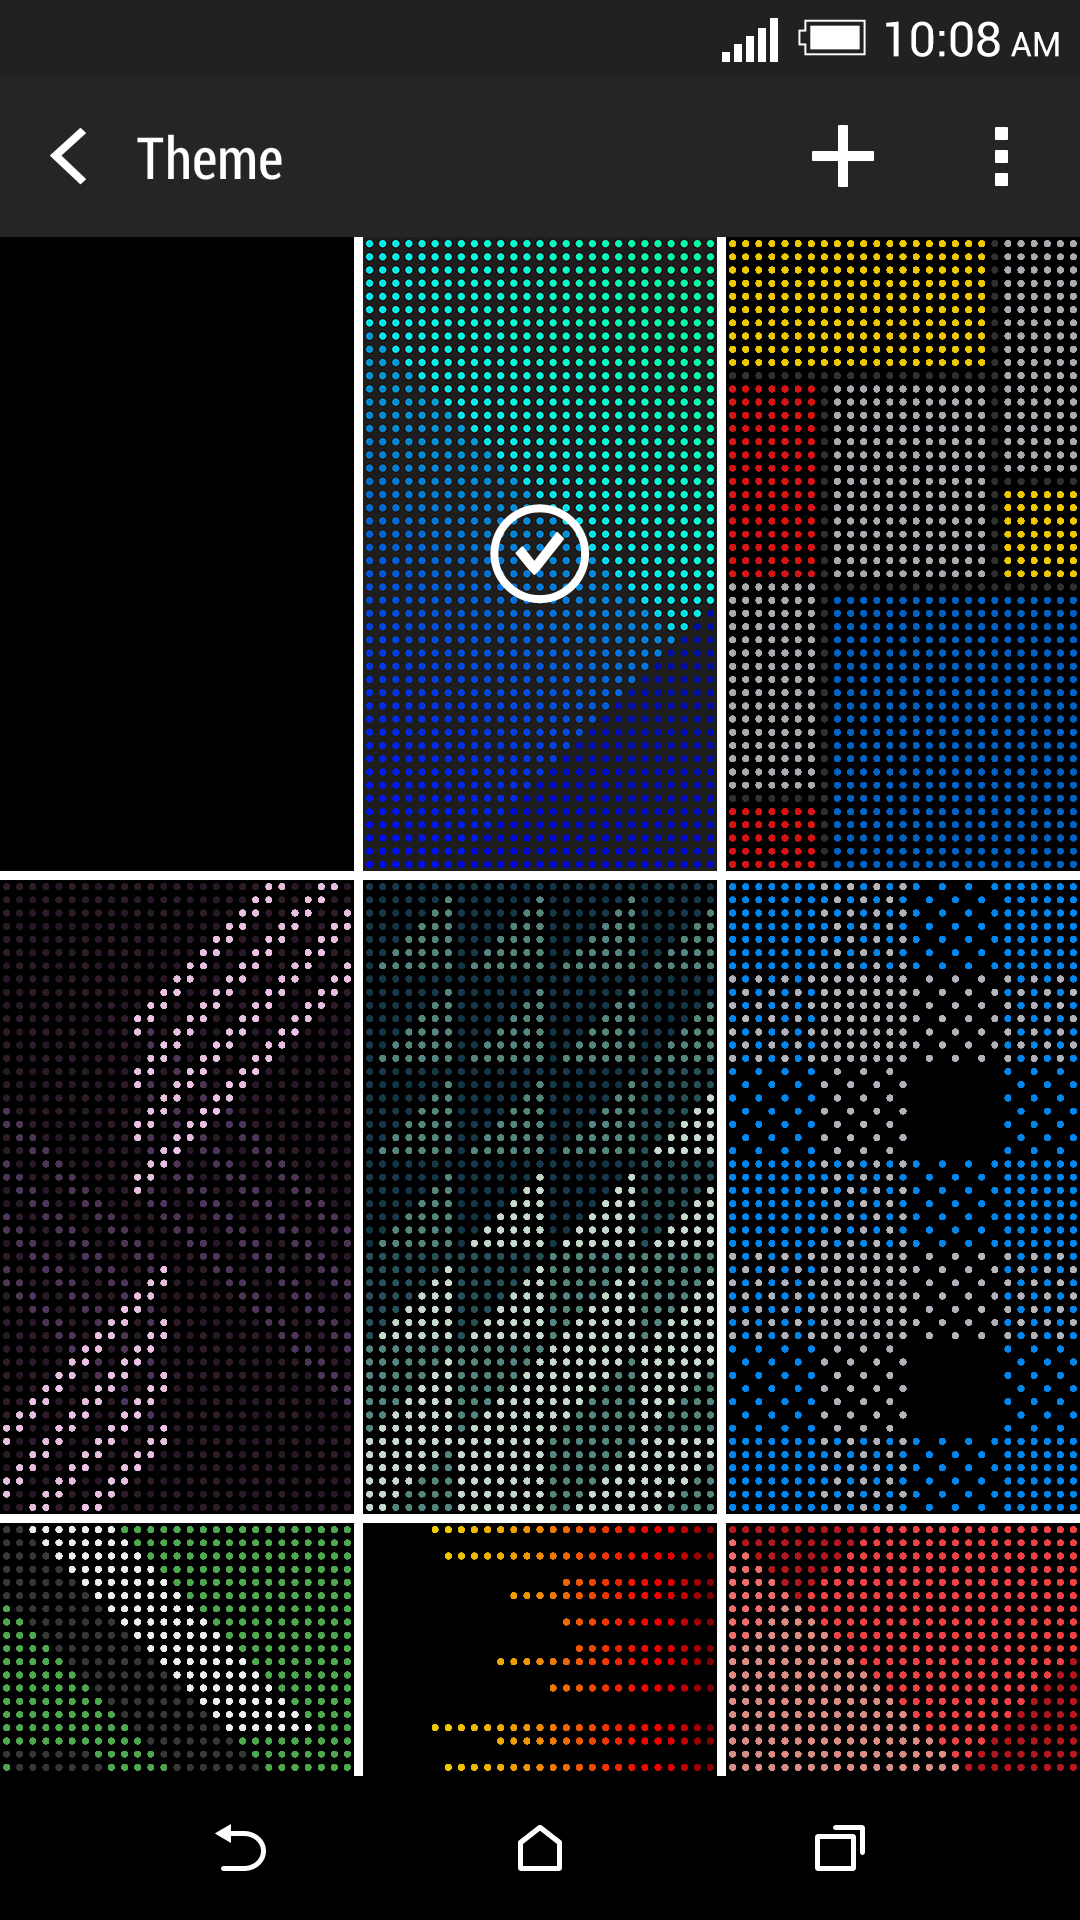 Default themes of the HTC Dot View app. <br> Image source: HTC